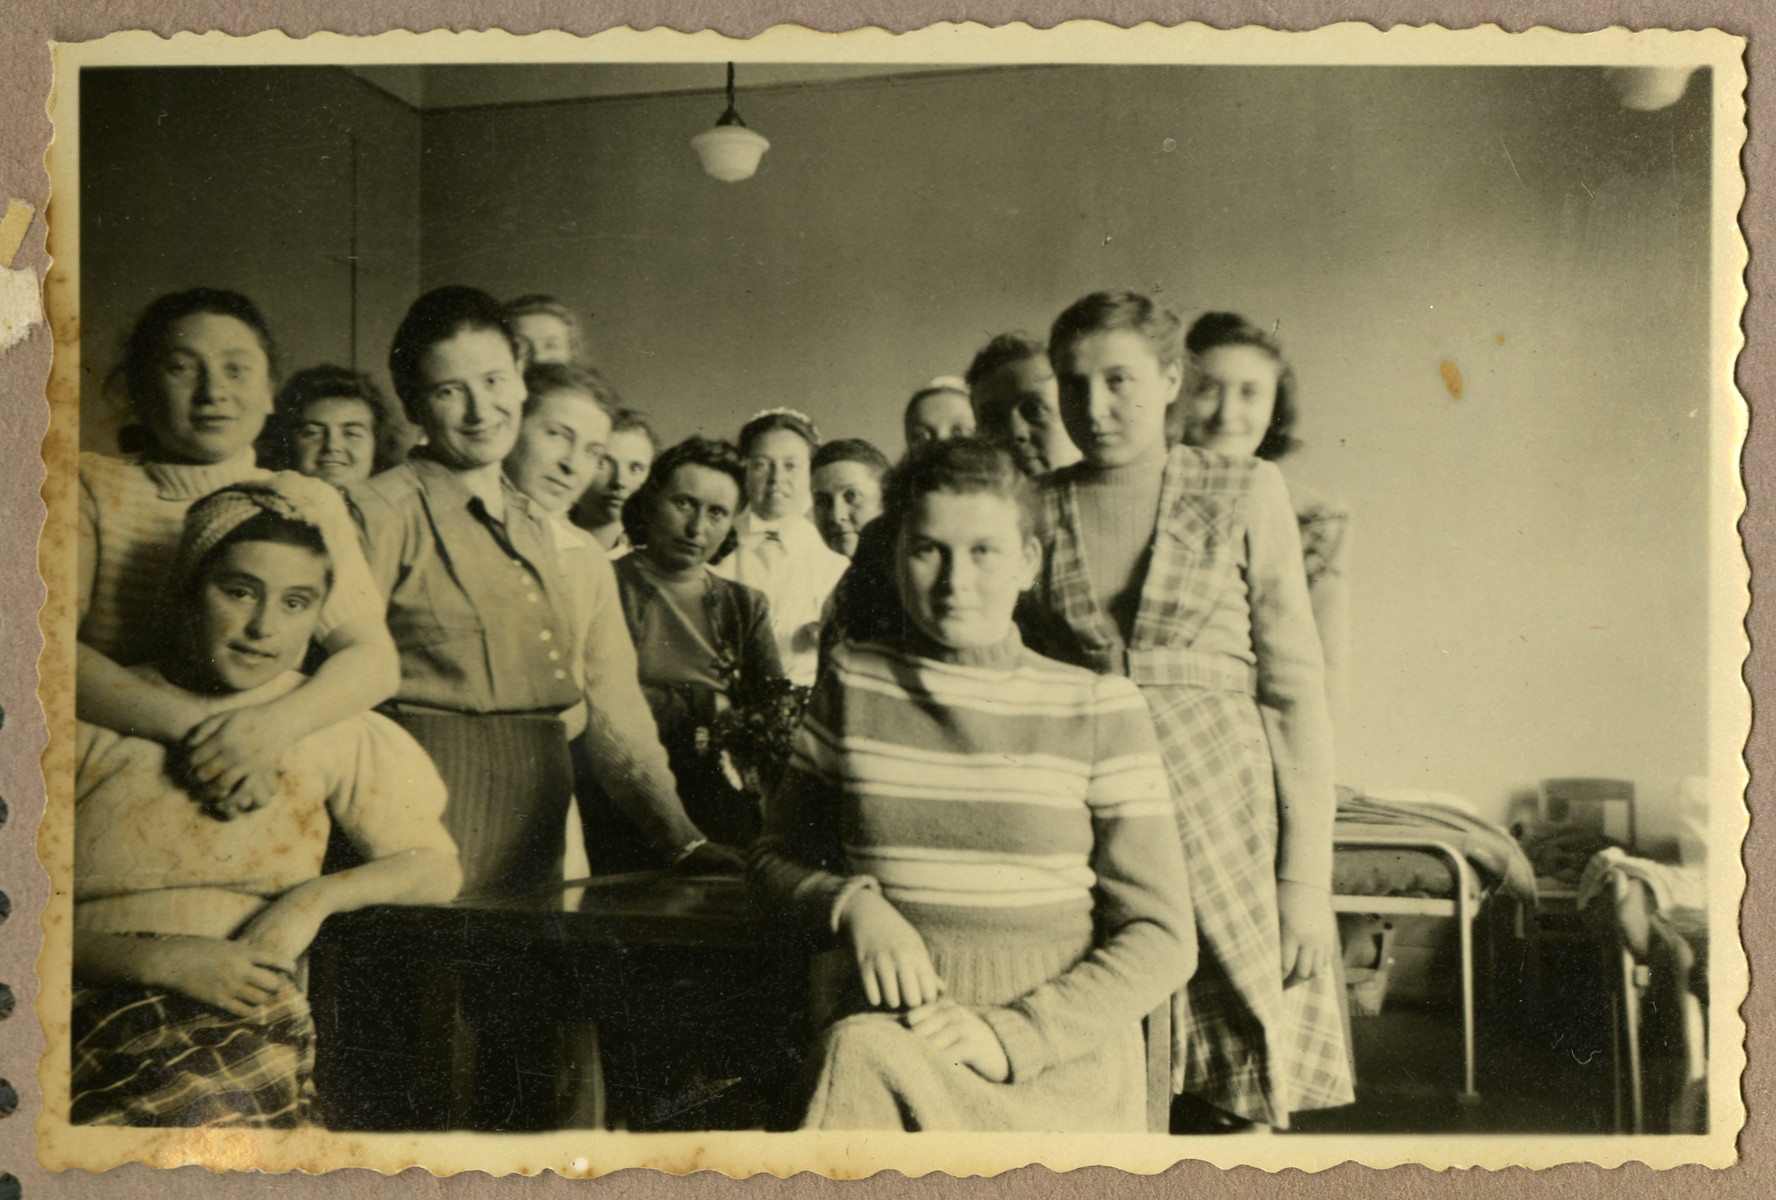 Jewish Holocaust survivors, housed in a hospital in Karlstad, Sweden, pose for a photograph.